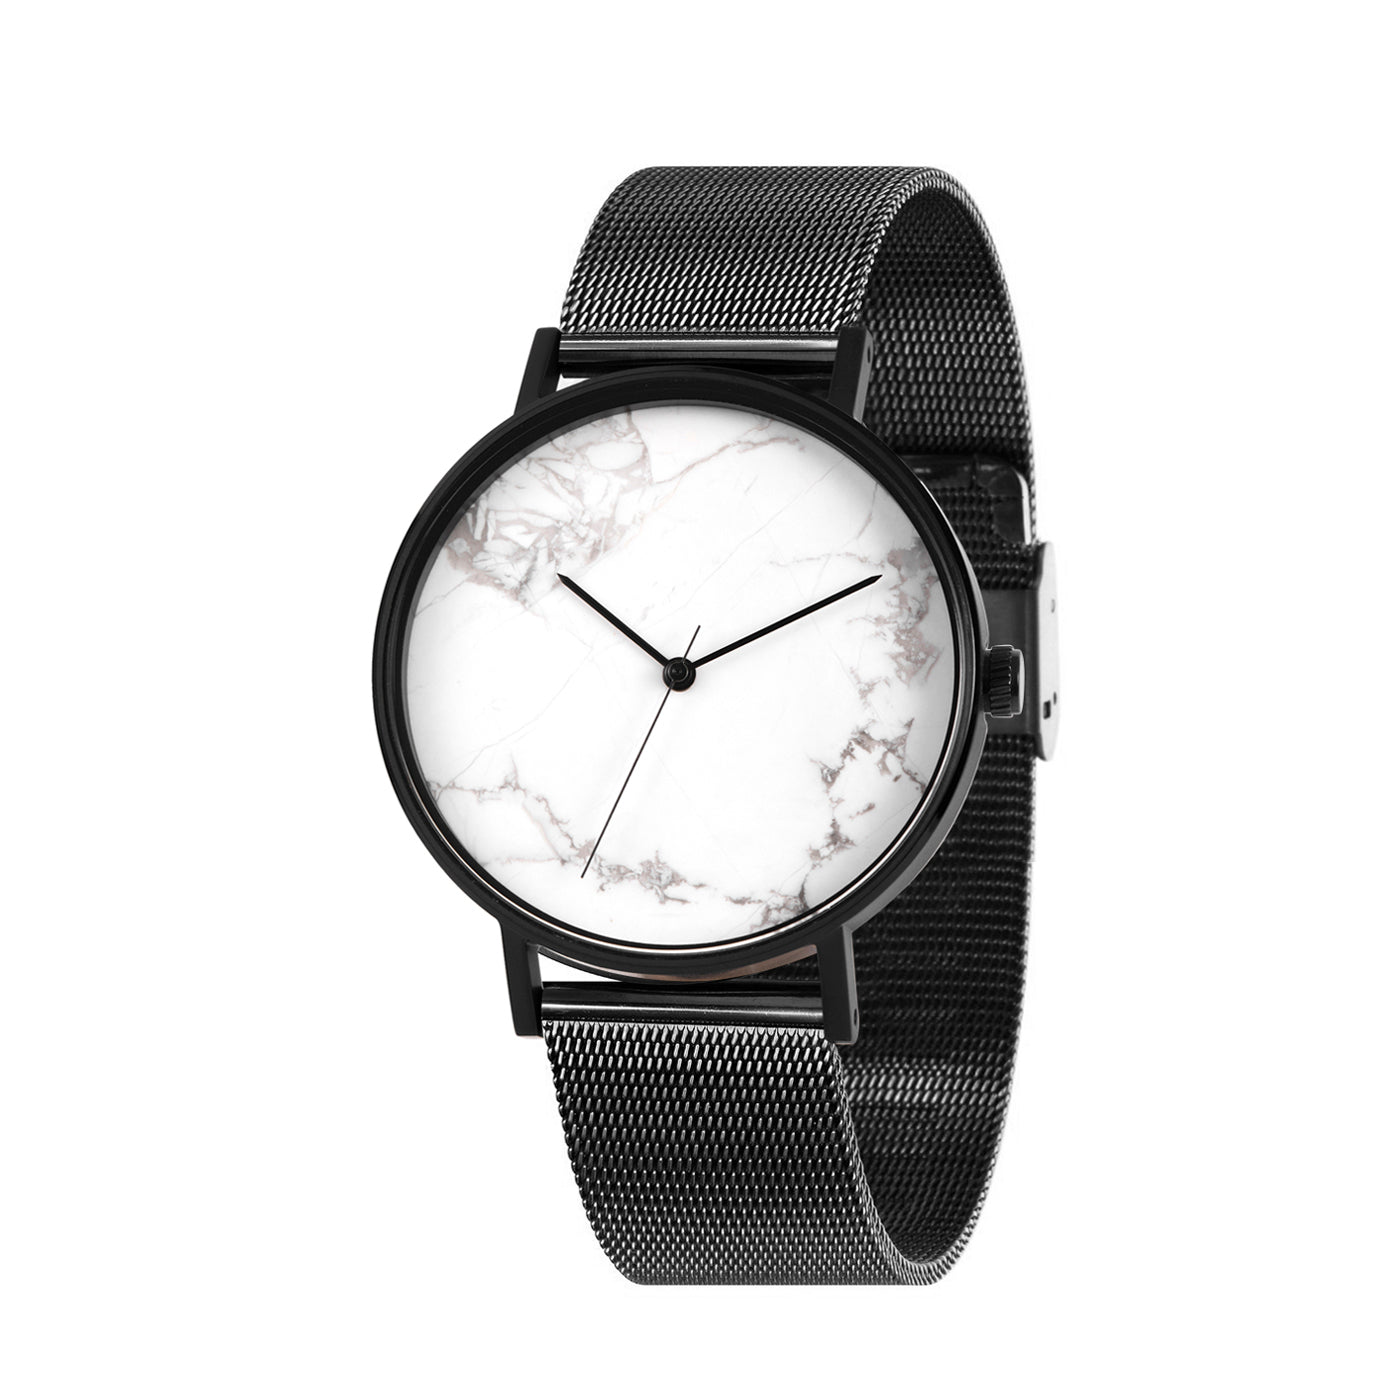 THE STONE -  WHITE MARBLE DIAL / BLACK MESH BAND WATCH